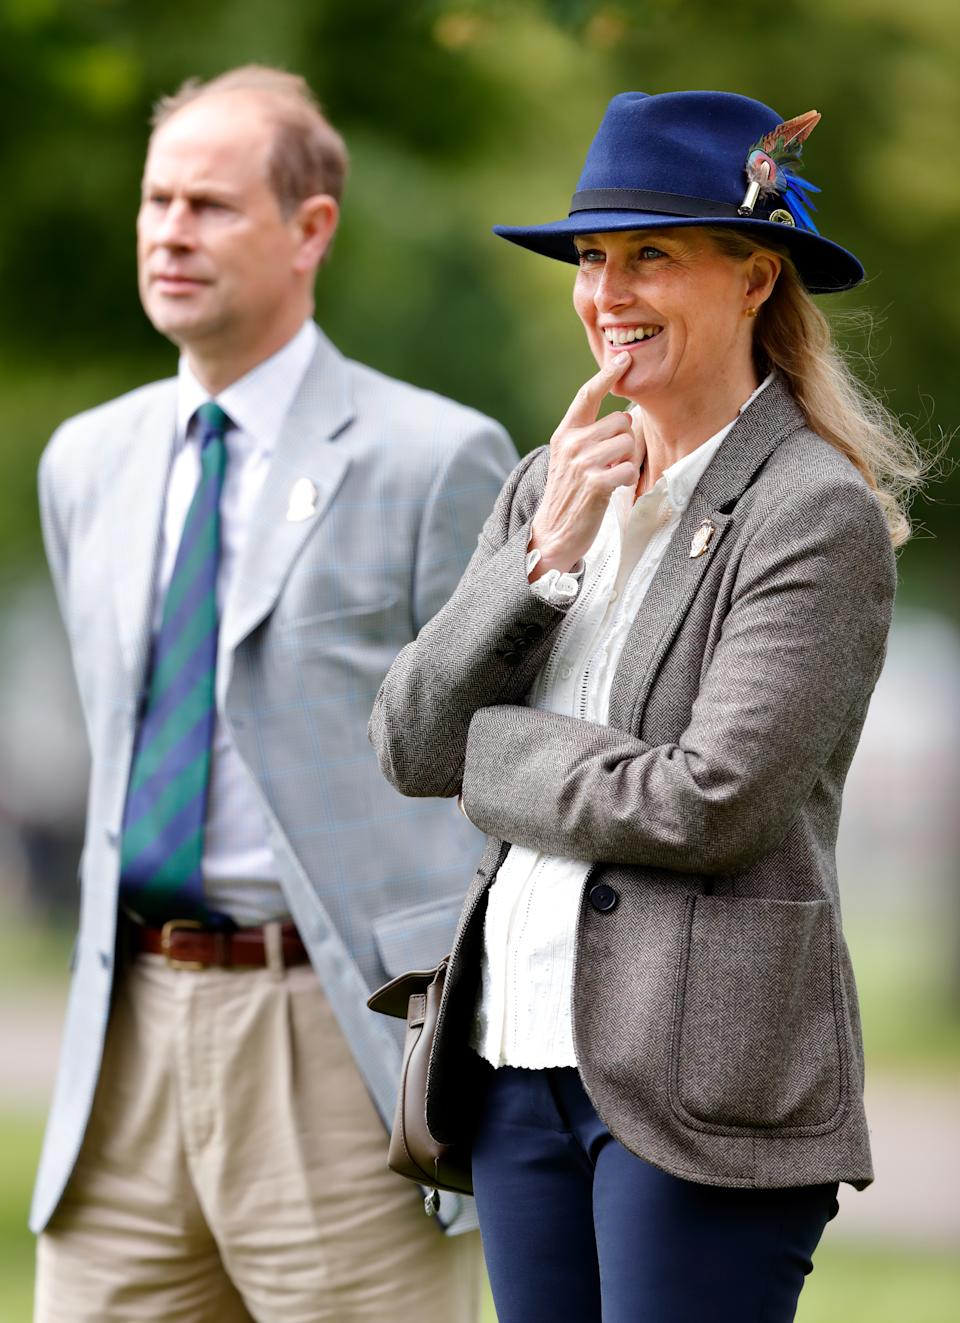 WINDSOR, UNITED KINGDOM - JULY 03: (EMBARGOED FOR PUBLICATION IN UK NEWSPAPERS UNTIL 24 HOURS AFTER CREATE DATE AND TIME) Prince Edward, Earl of Wessex and Sophie, Countess of Wessex watch the carriage driving marathon event as they attend day 3 of the Royal Windsor Horse Show in Home Park, Windsor Castle on July 3, 2021 in Windsor, England. (Photo by Max Mumby/Indigo/Getty Images)